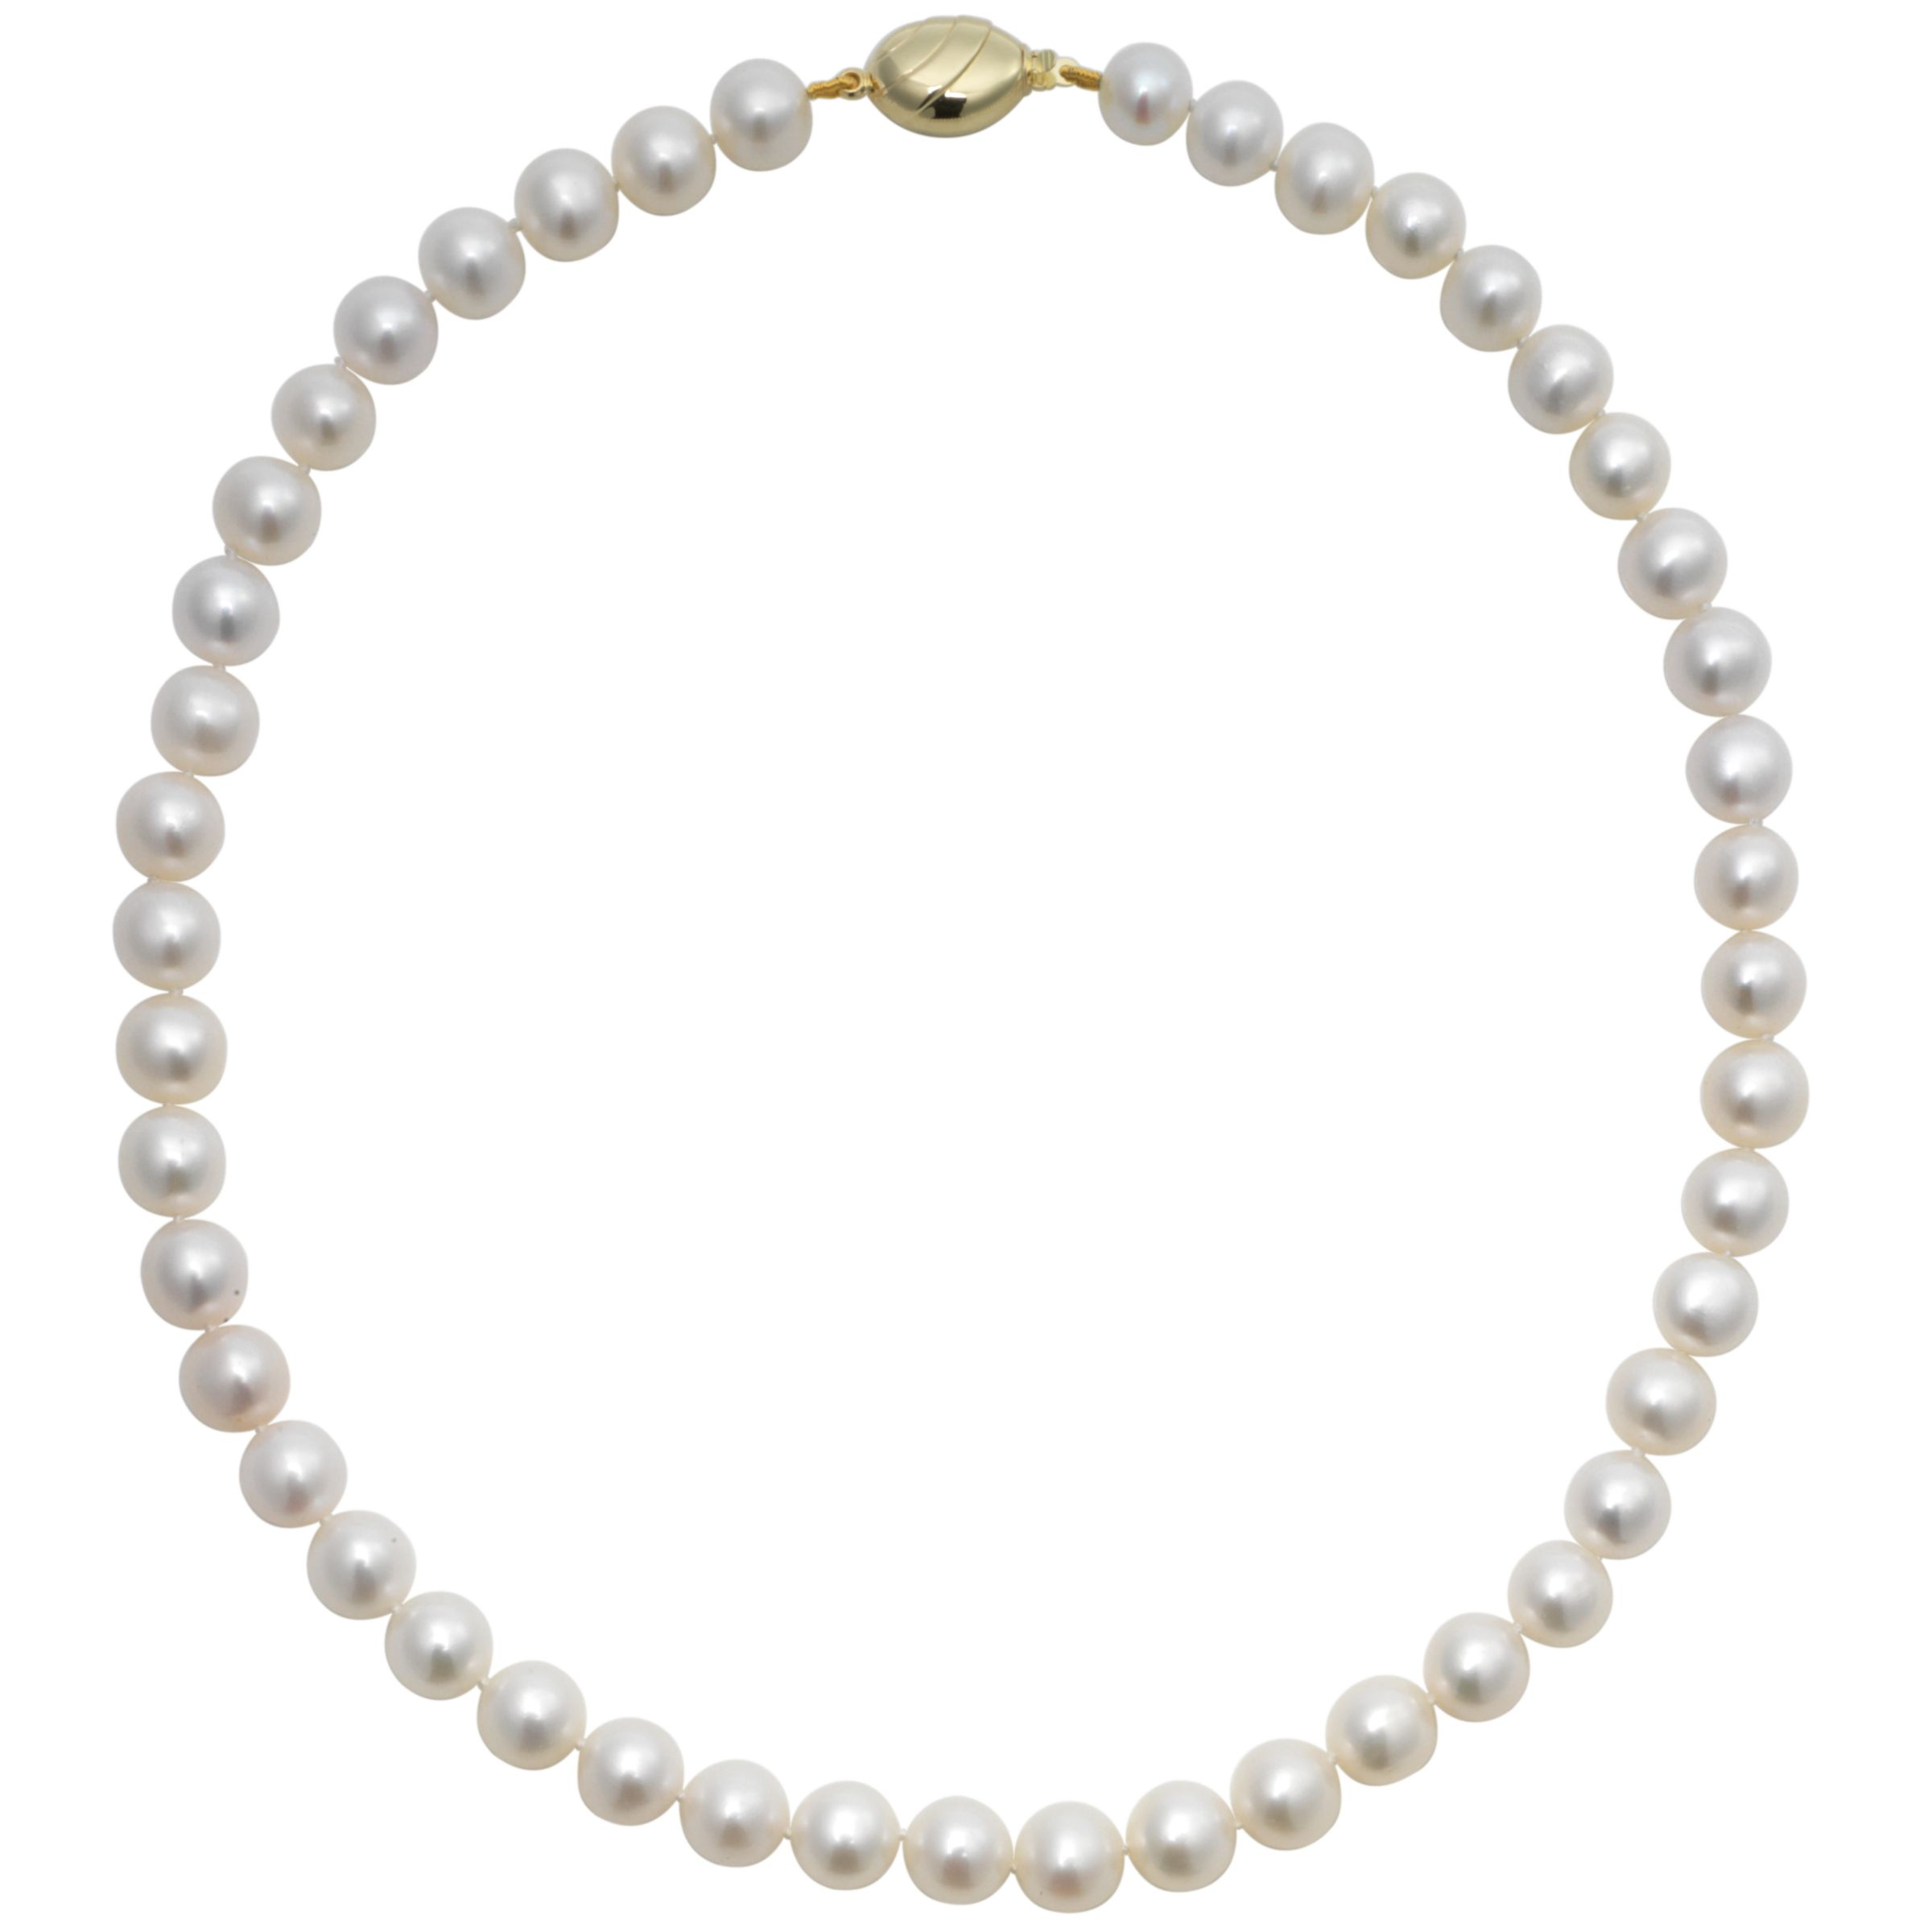 Lustre Freshwater Cultured Pearls Knotted 18